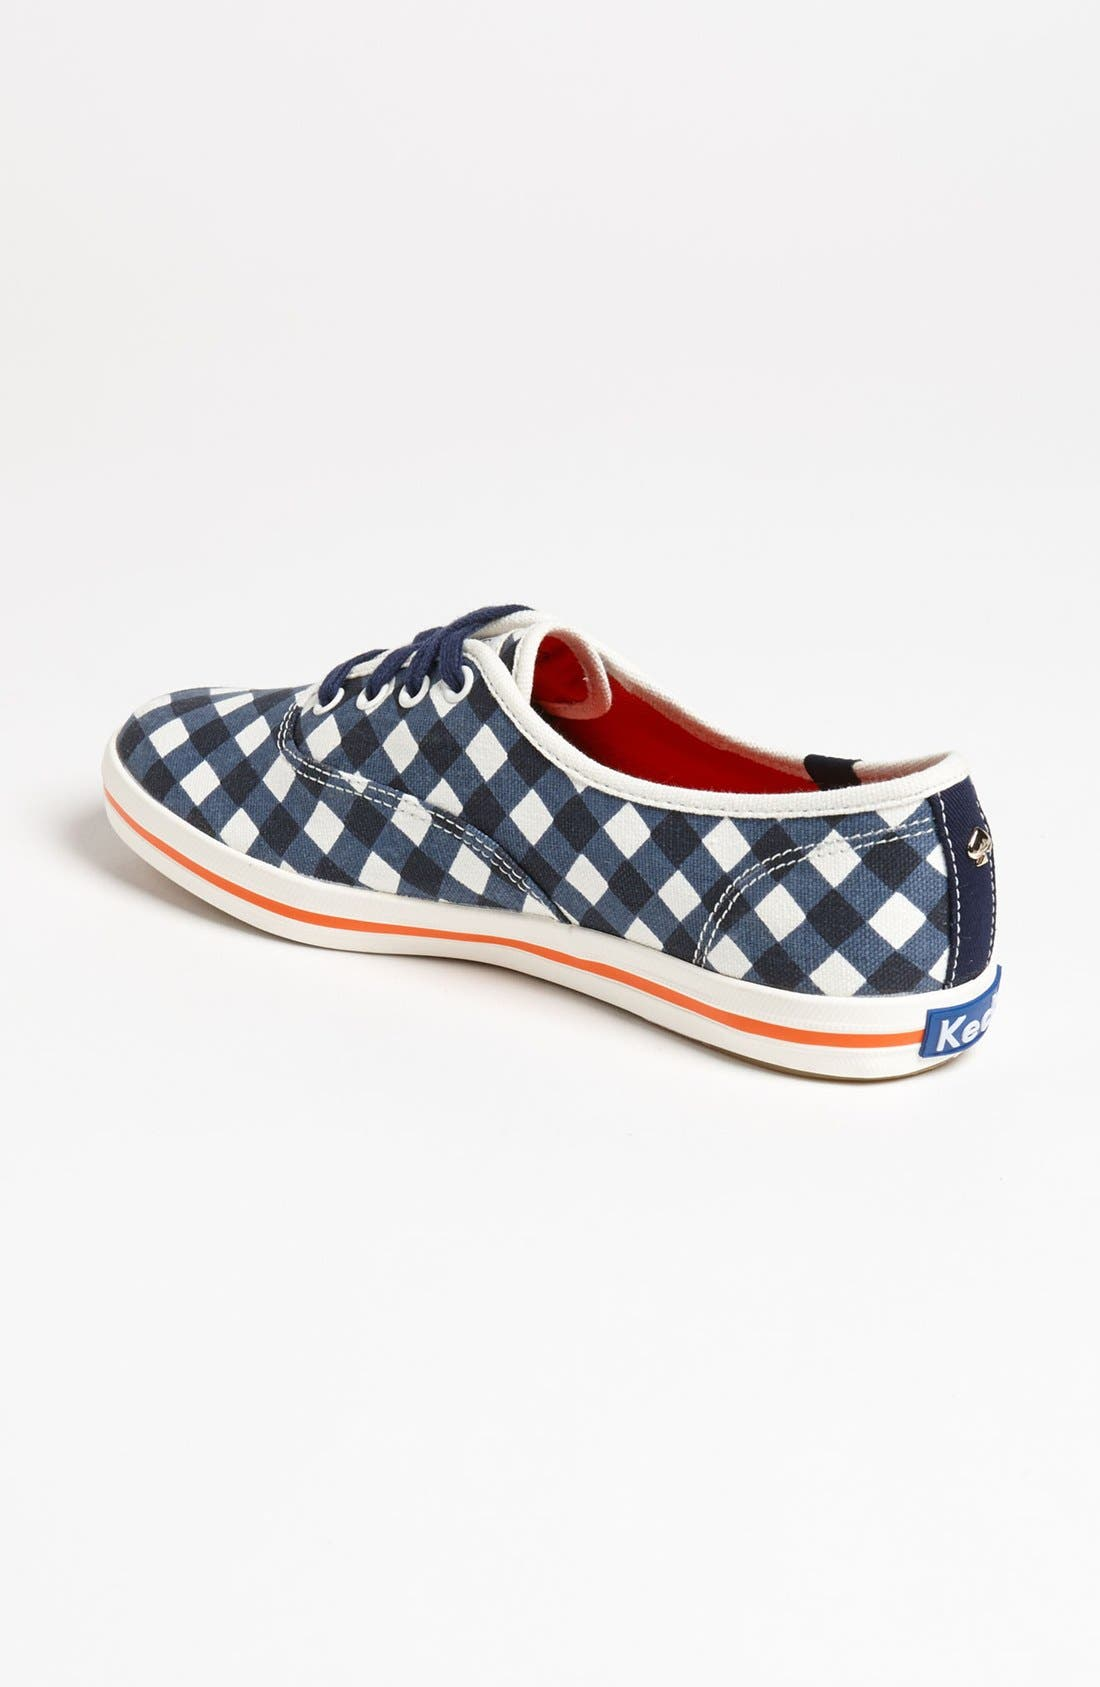 ,                             Keds<sup>®</sup> for kate spade new york 'kick' sneaker,                             Alternate thumbnail 8, color,                             410